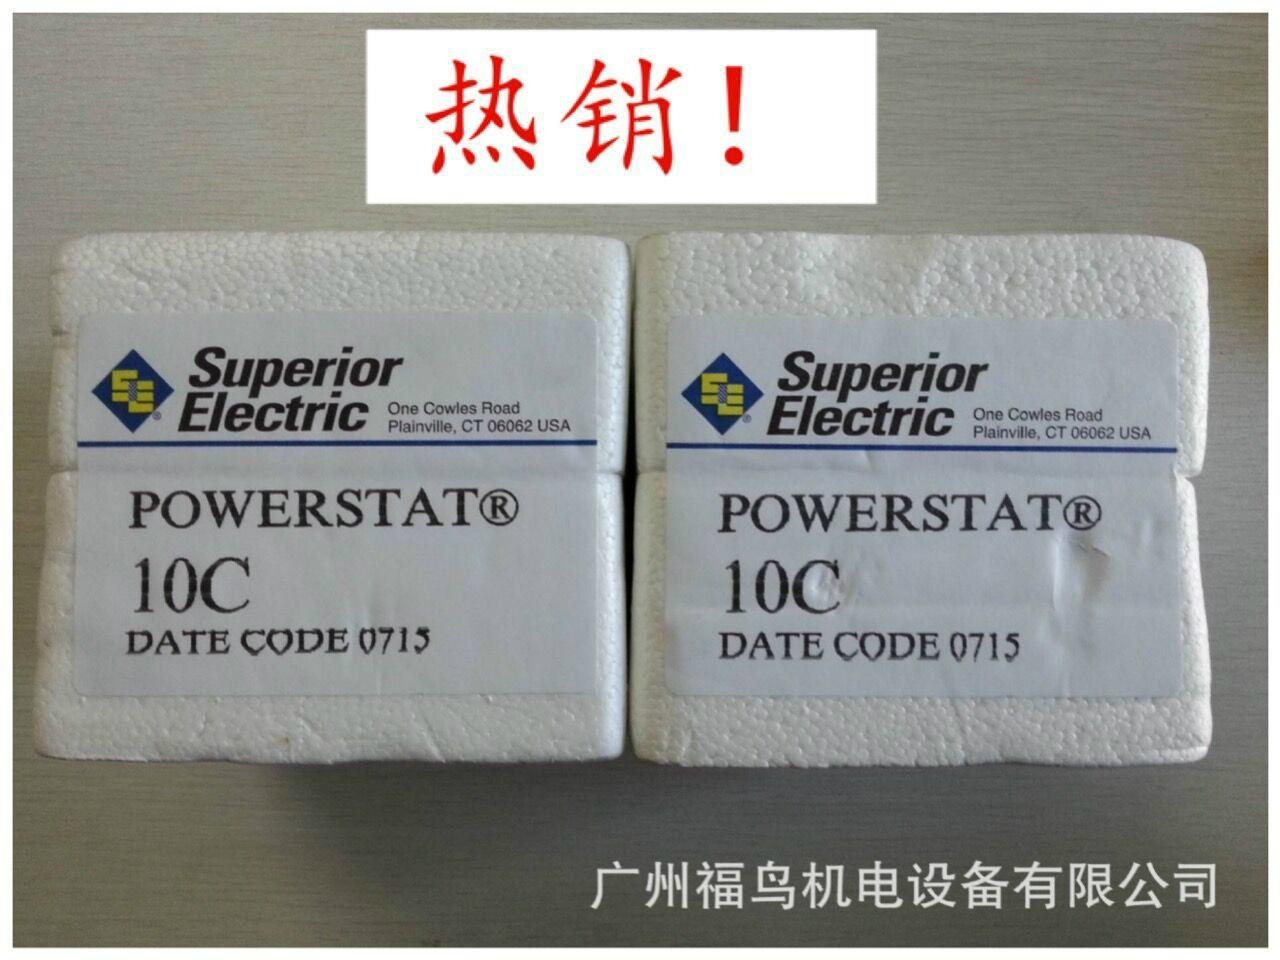 SUPERIOR ELECTRIC调压器, 型号: 10C